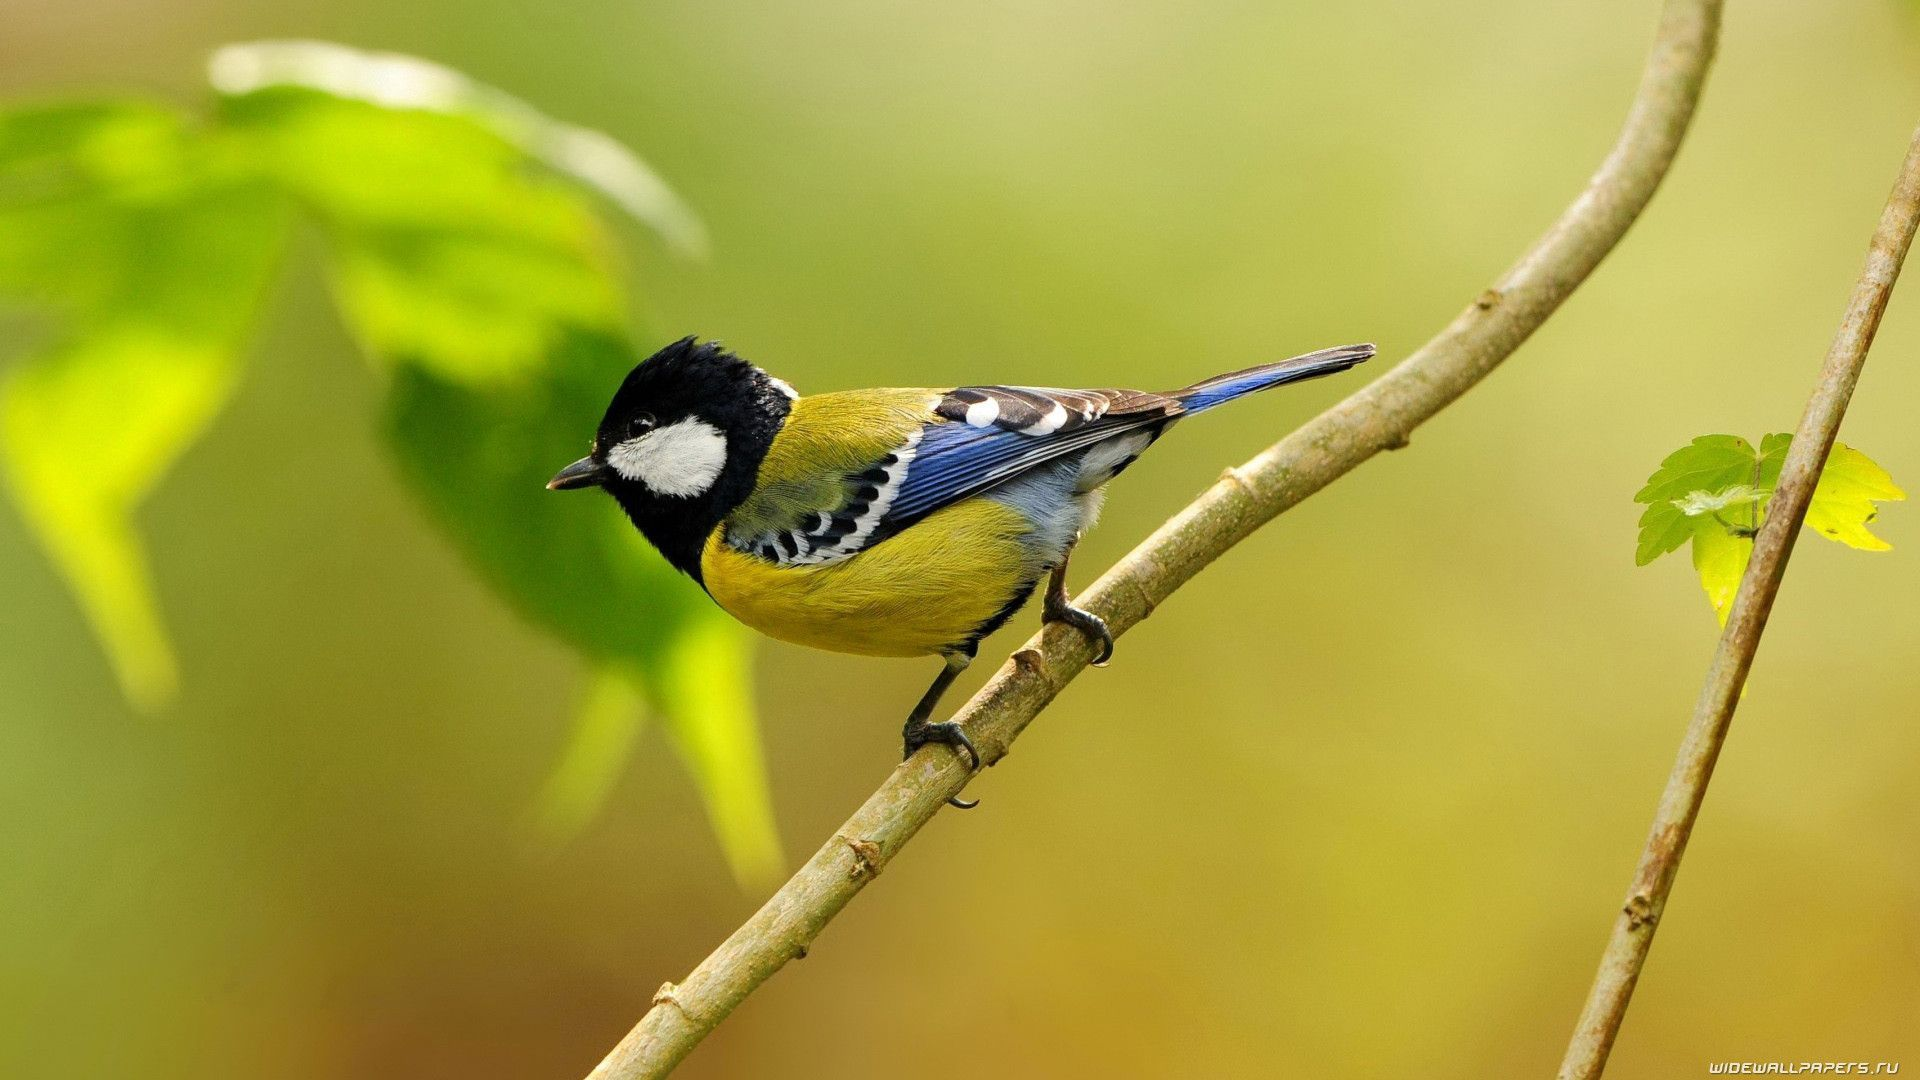 Birds-Collection-For-Free-Download-wallpaper-wp3603345